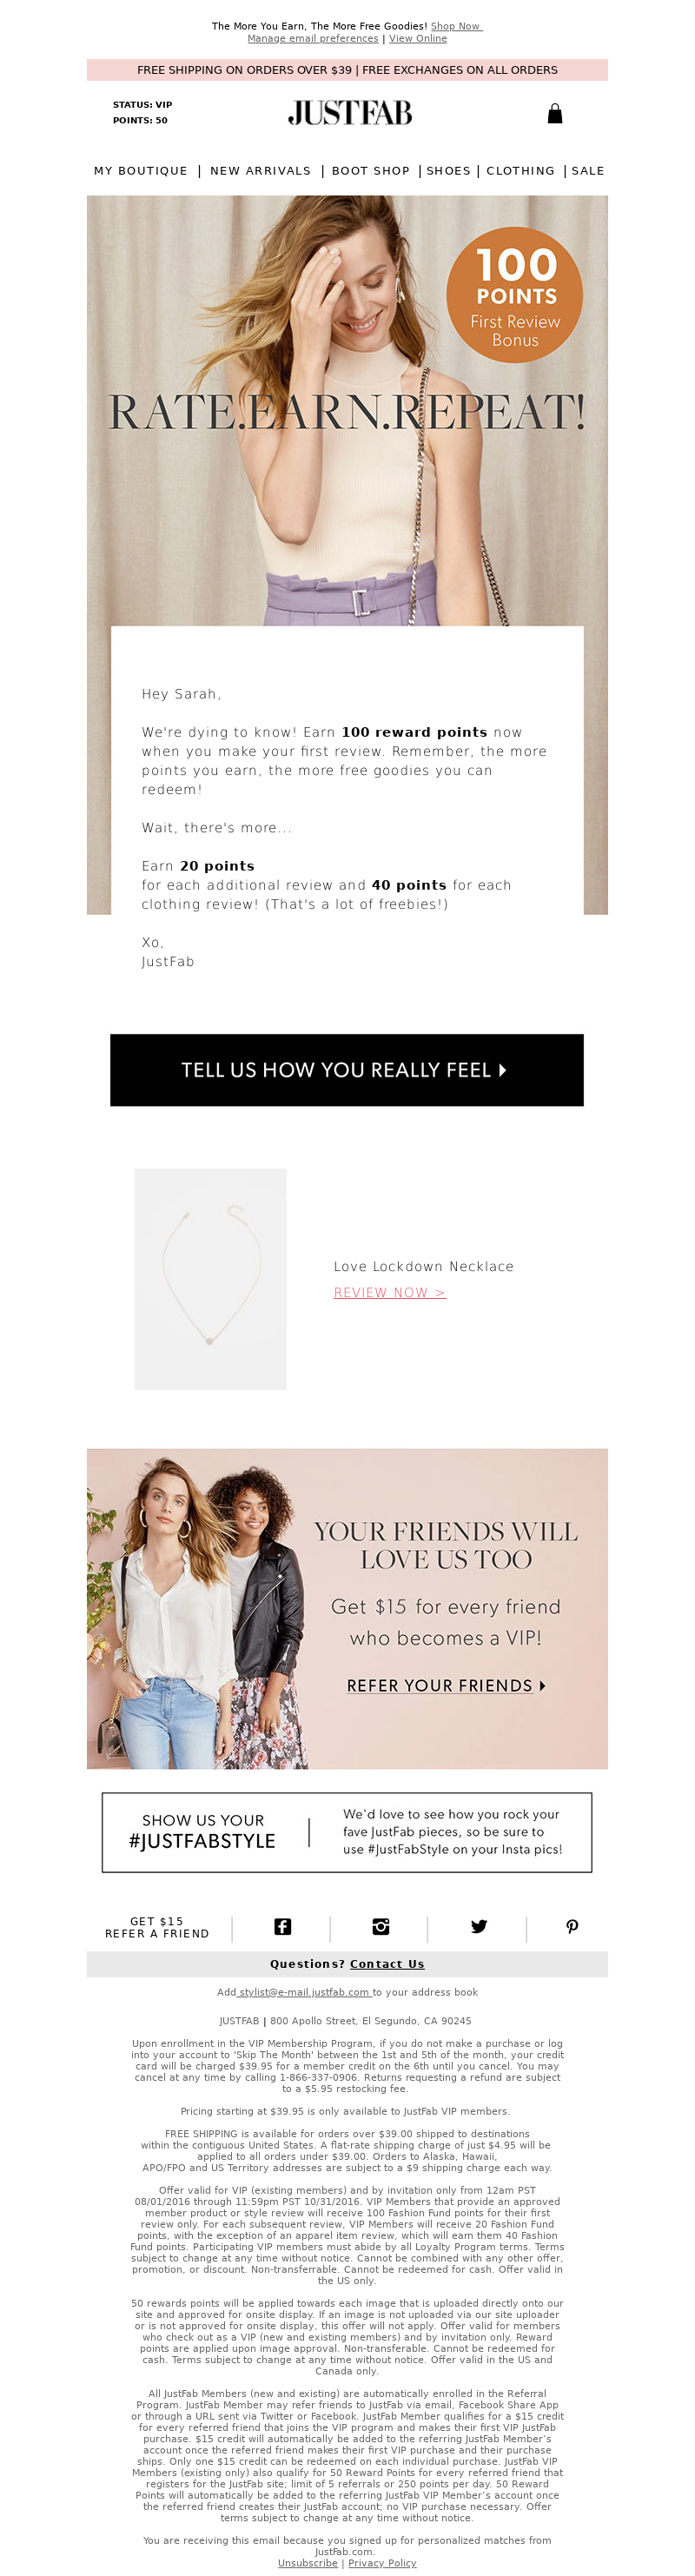 The More You Earn, The More Free Goodies! Shop Now Manage email preferences